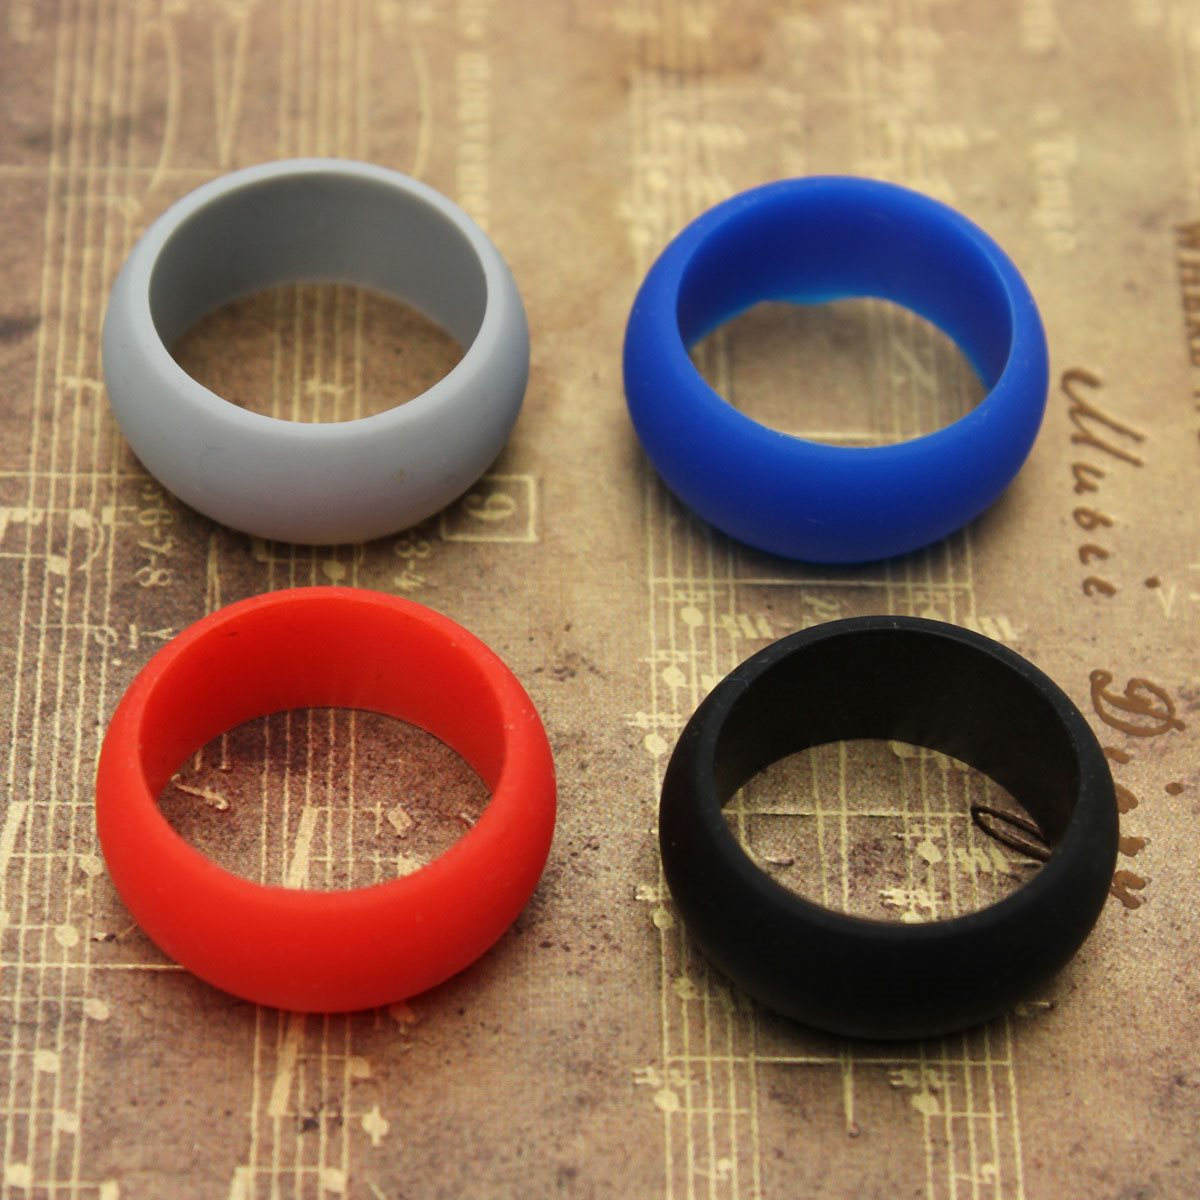 Hot Selling Ring Flexible Hypoallergenic Silicone Rubber 4 Colors Wedding Rings  Engagement Cocktail Soft Touch Men